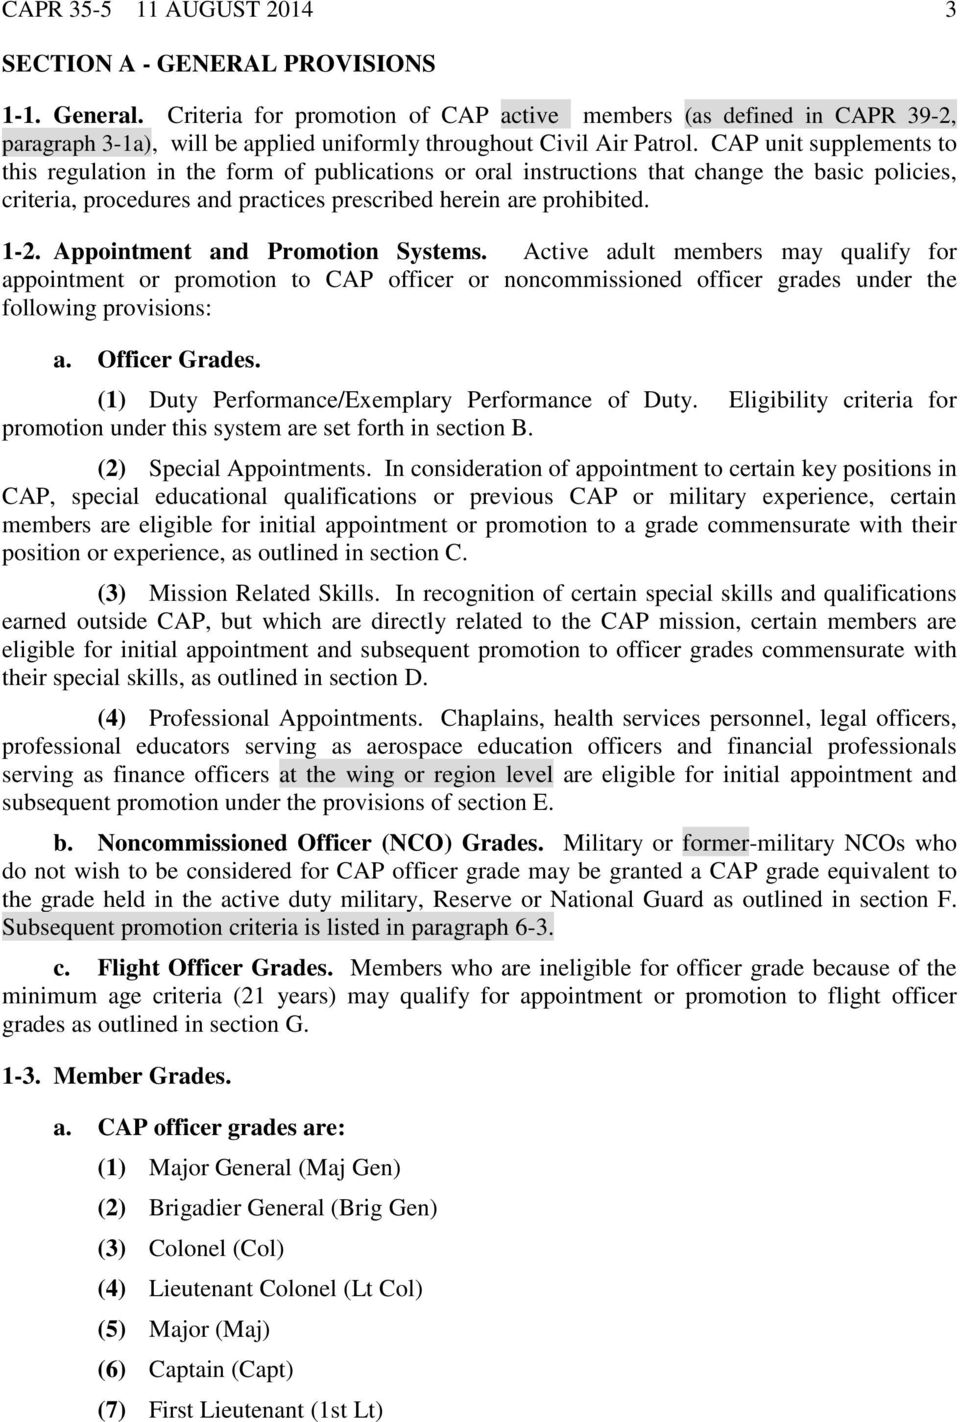 personnel procedures cap officer and noncommissioned officer cap unit supplements to this regulation in the form of publications or oral instructions that change